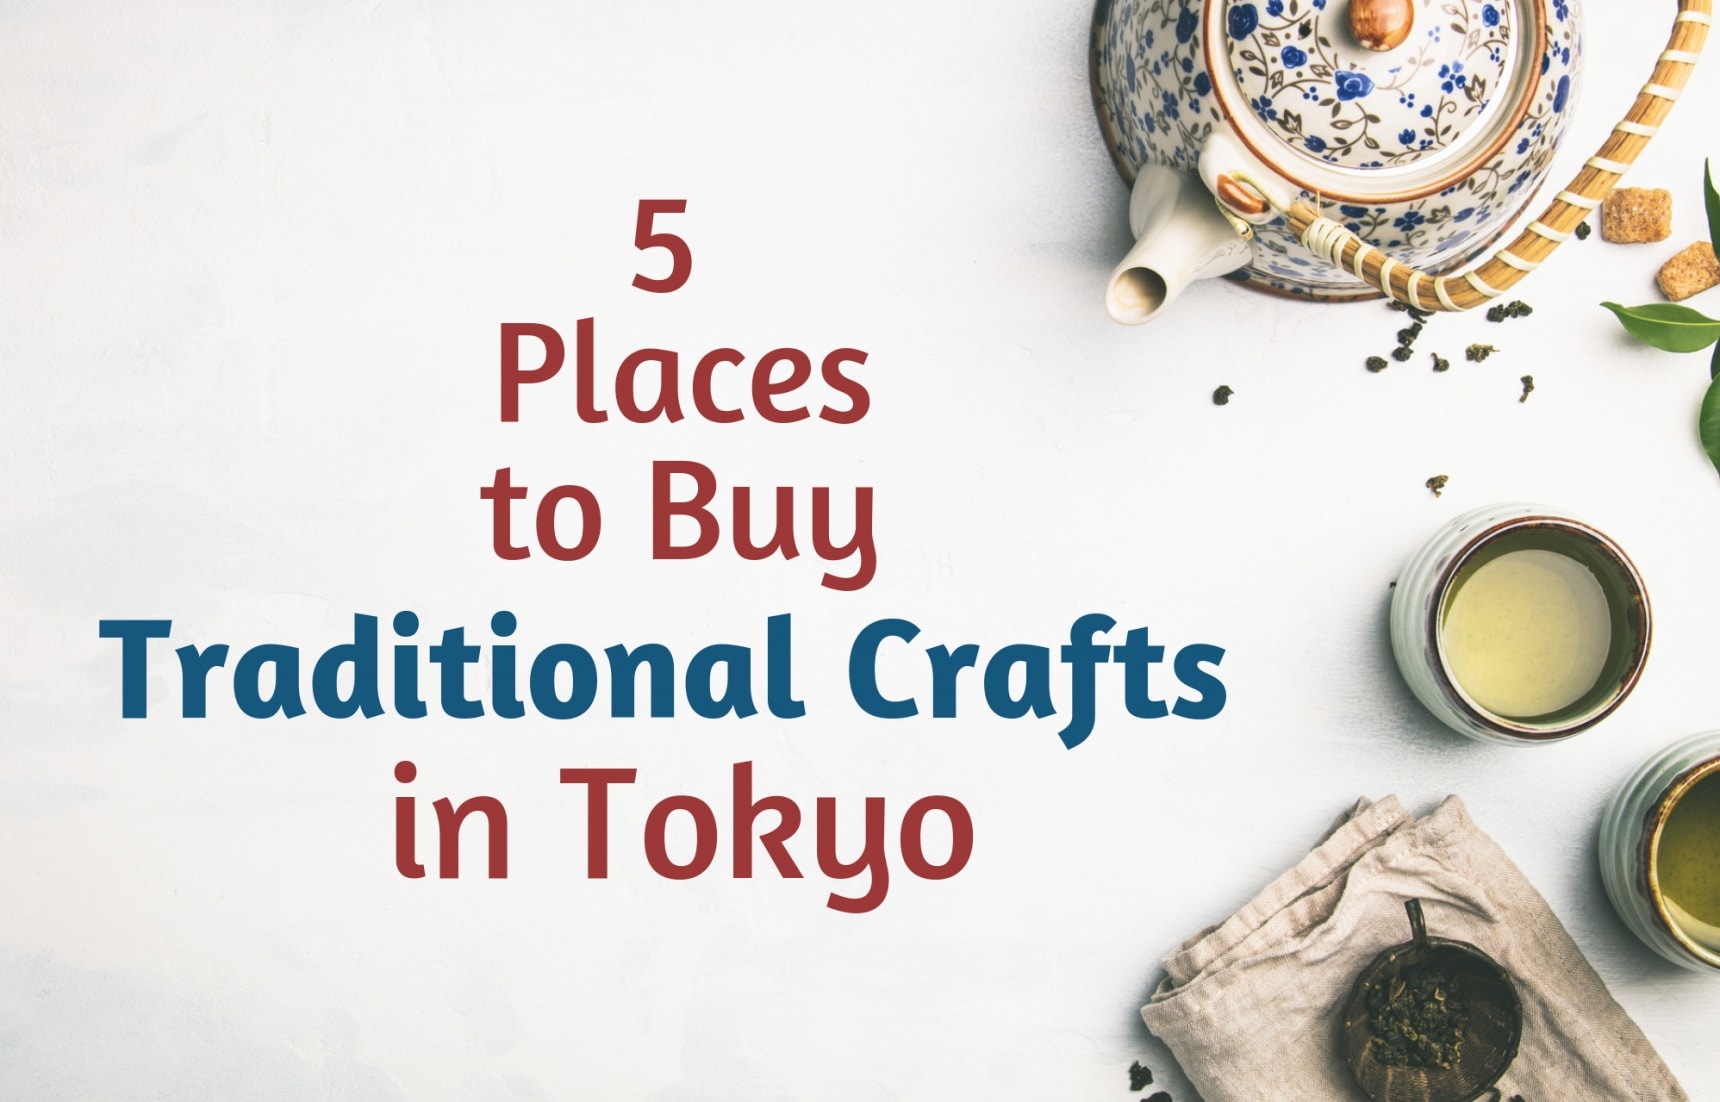 5 Places to Buy Traditional Crafts in Tokyo